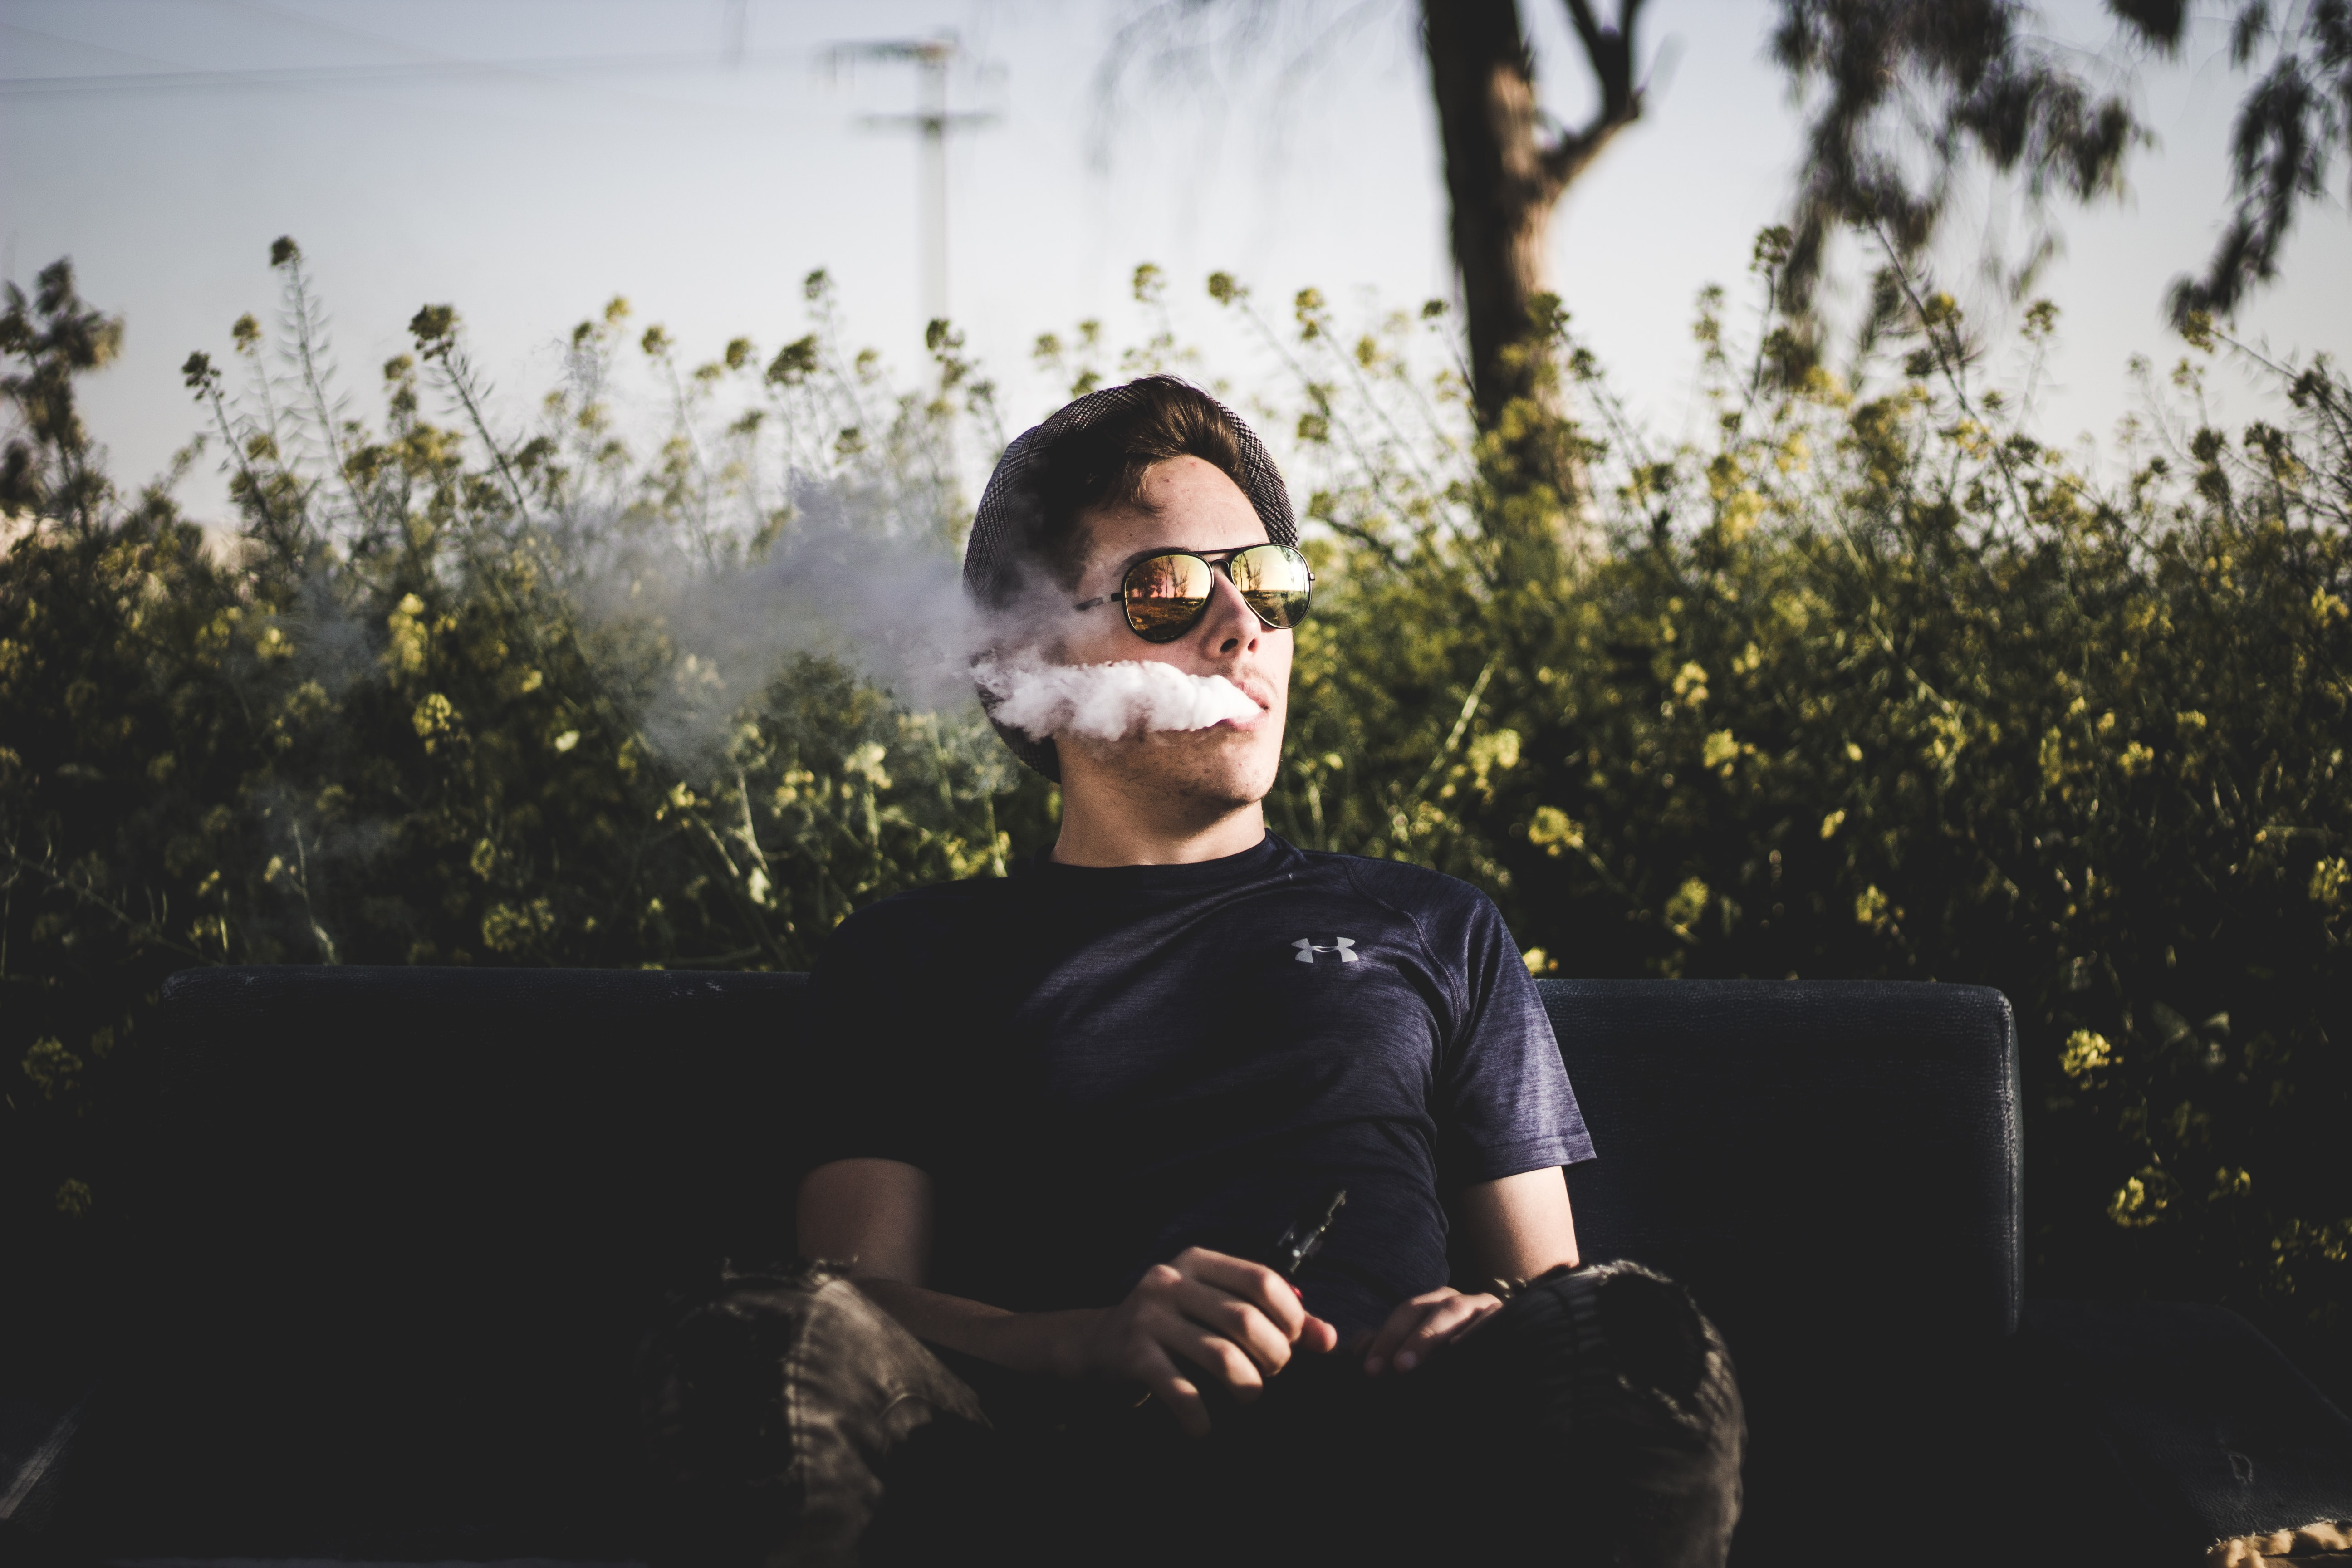 Hipster man in sunglasses vaping and blowing smoke from his mouth